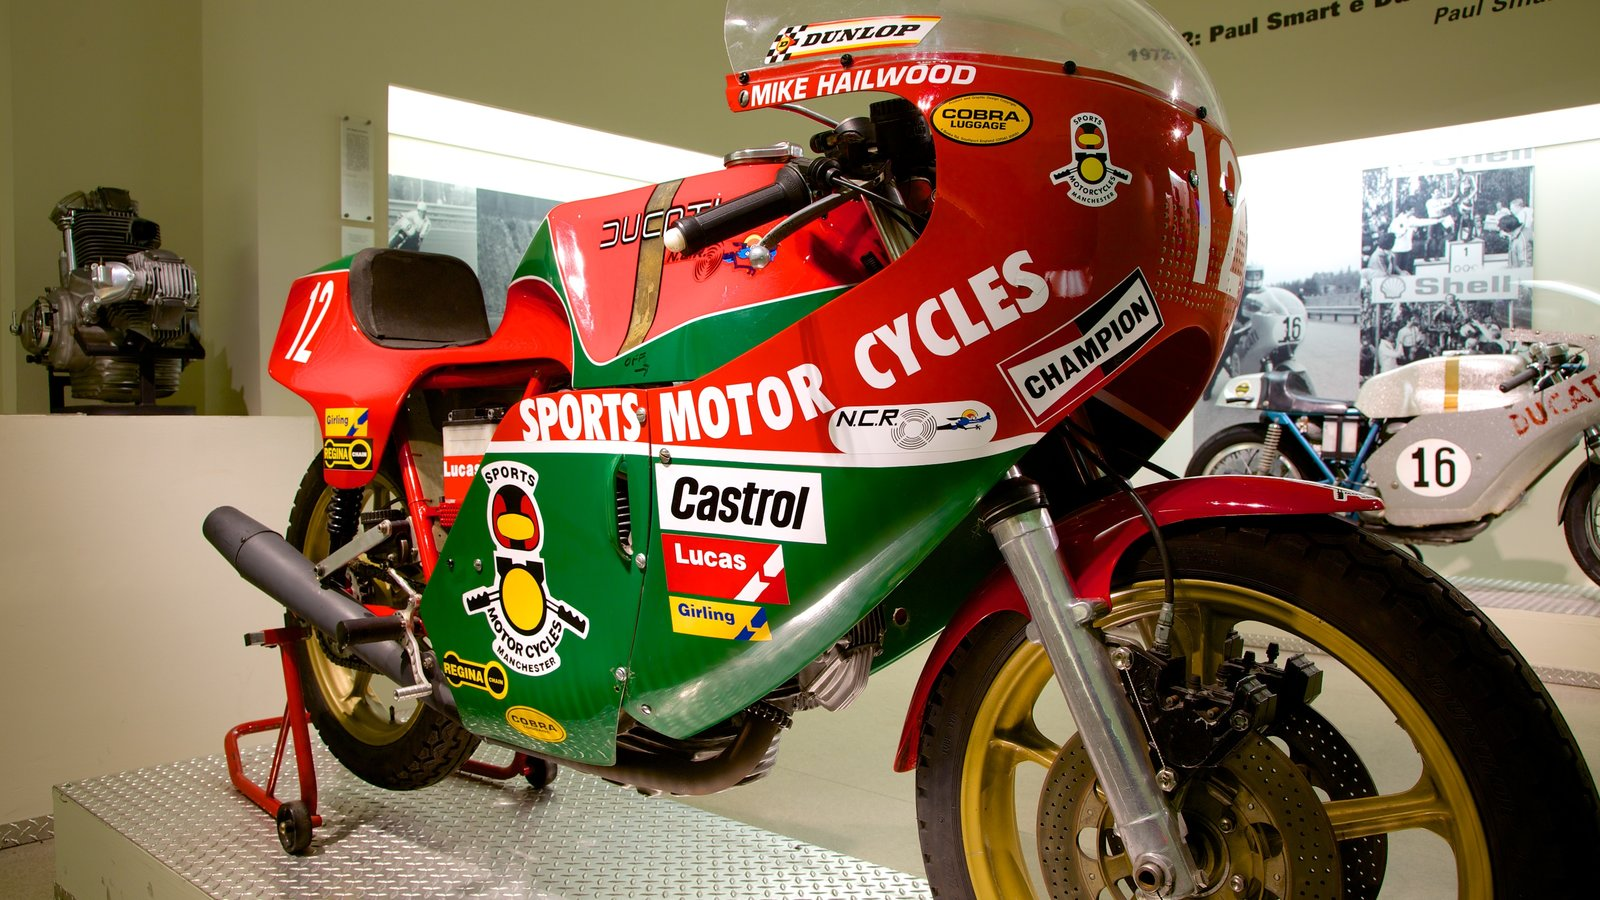 museum pictures: view images of ducati museum